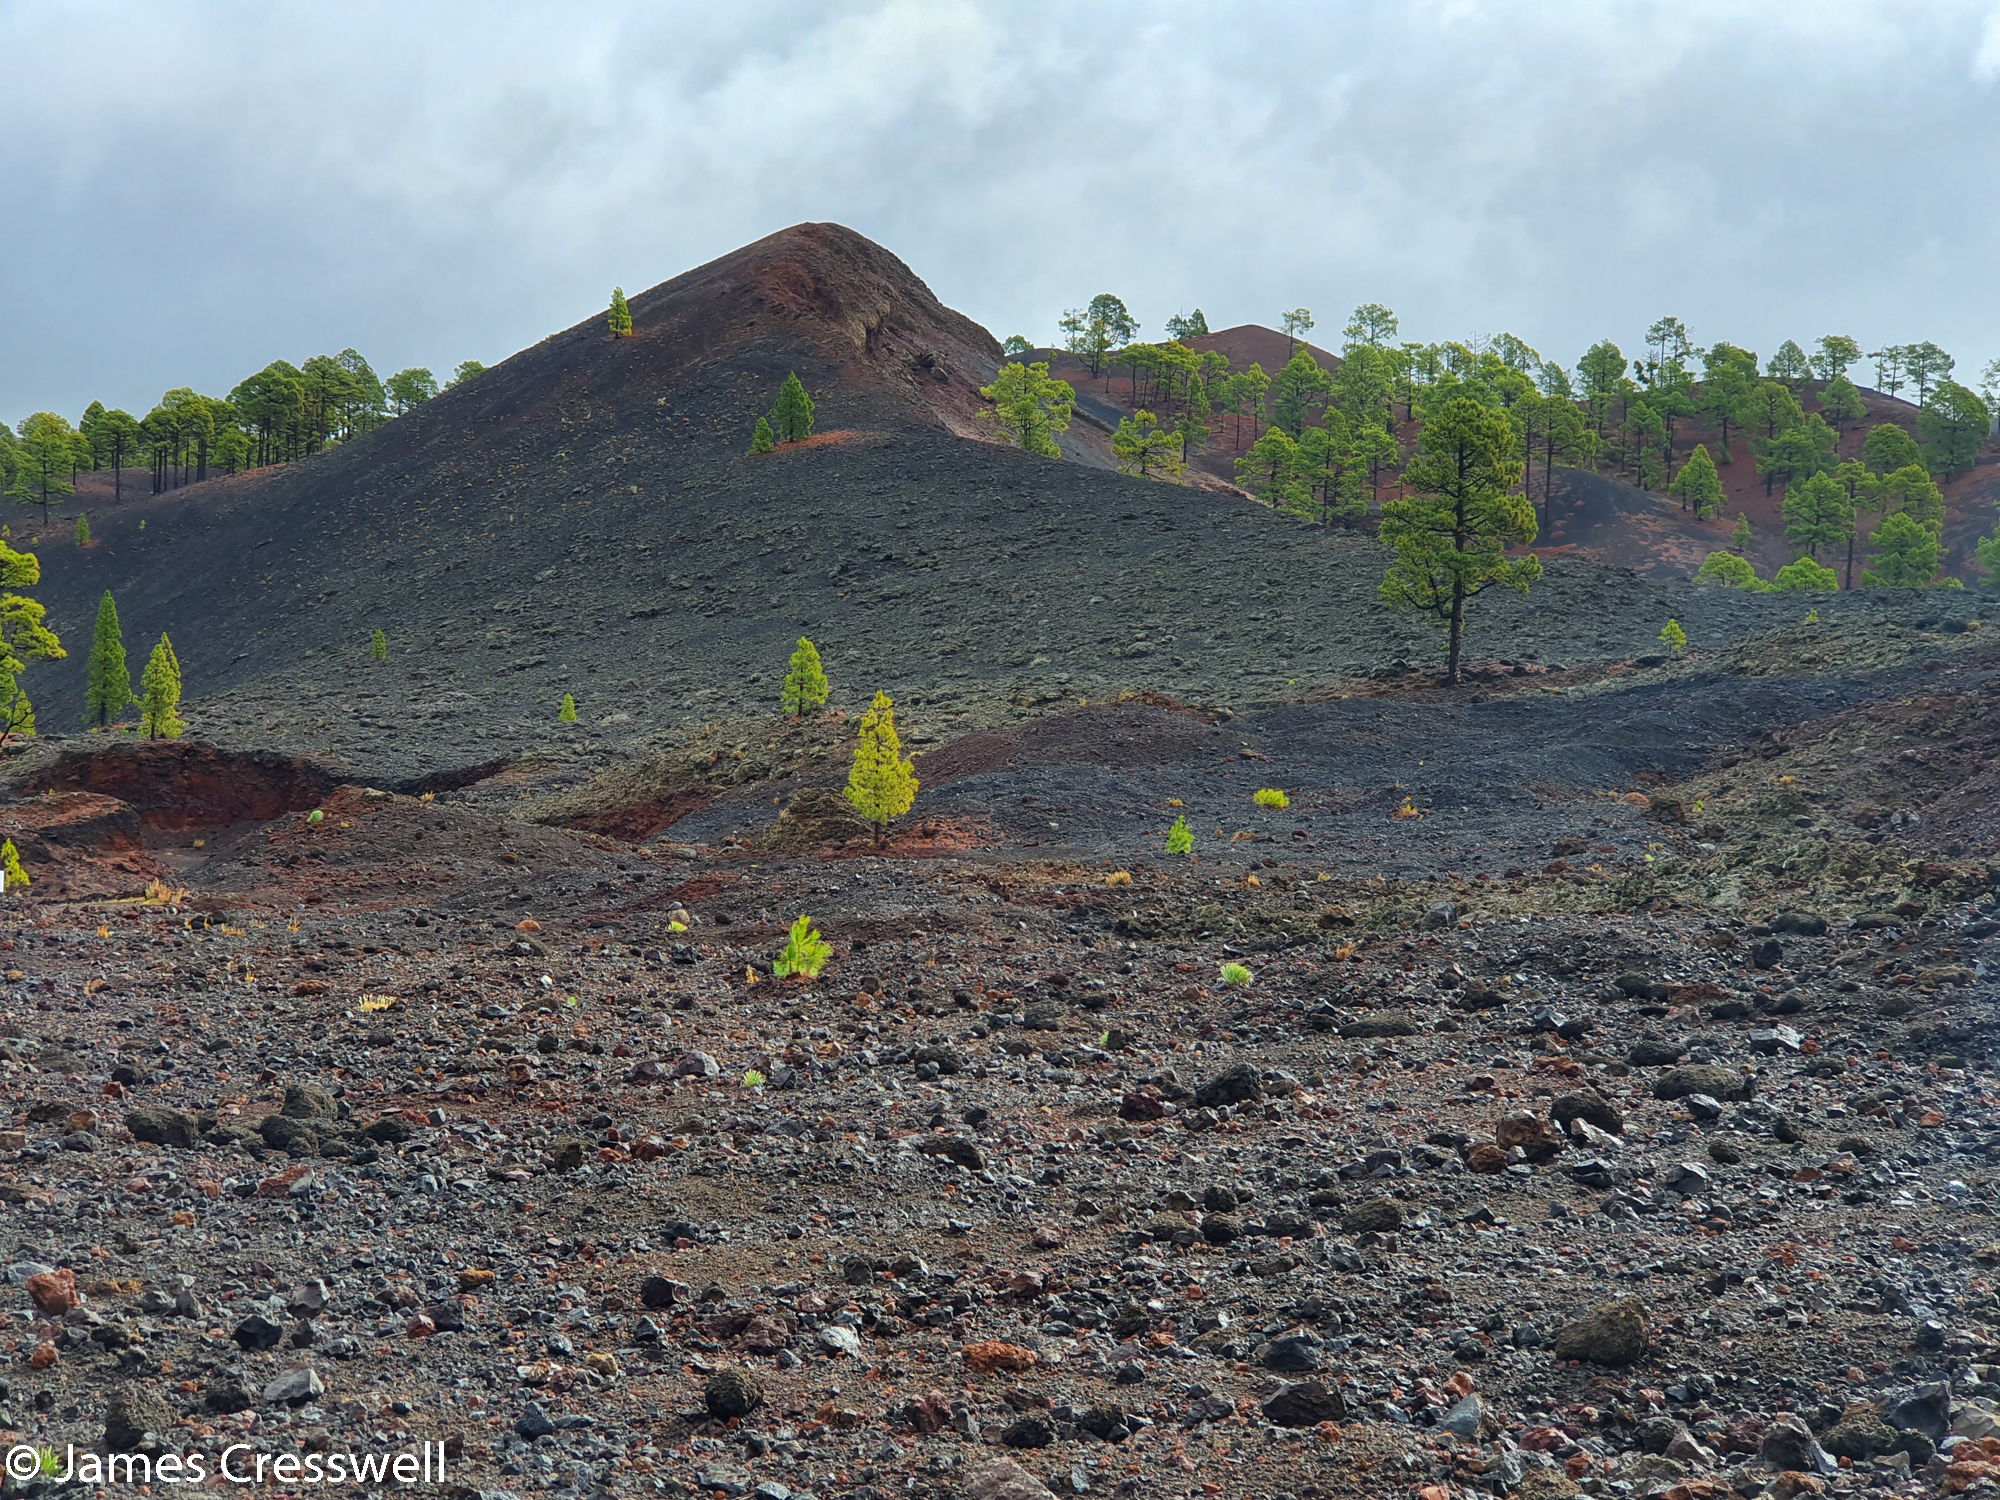 Trees growing on volcanic material